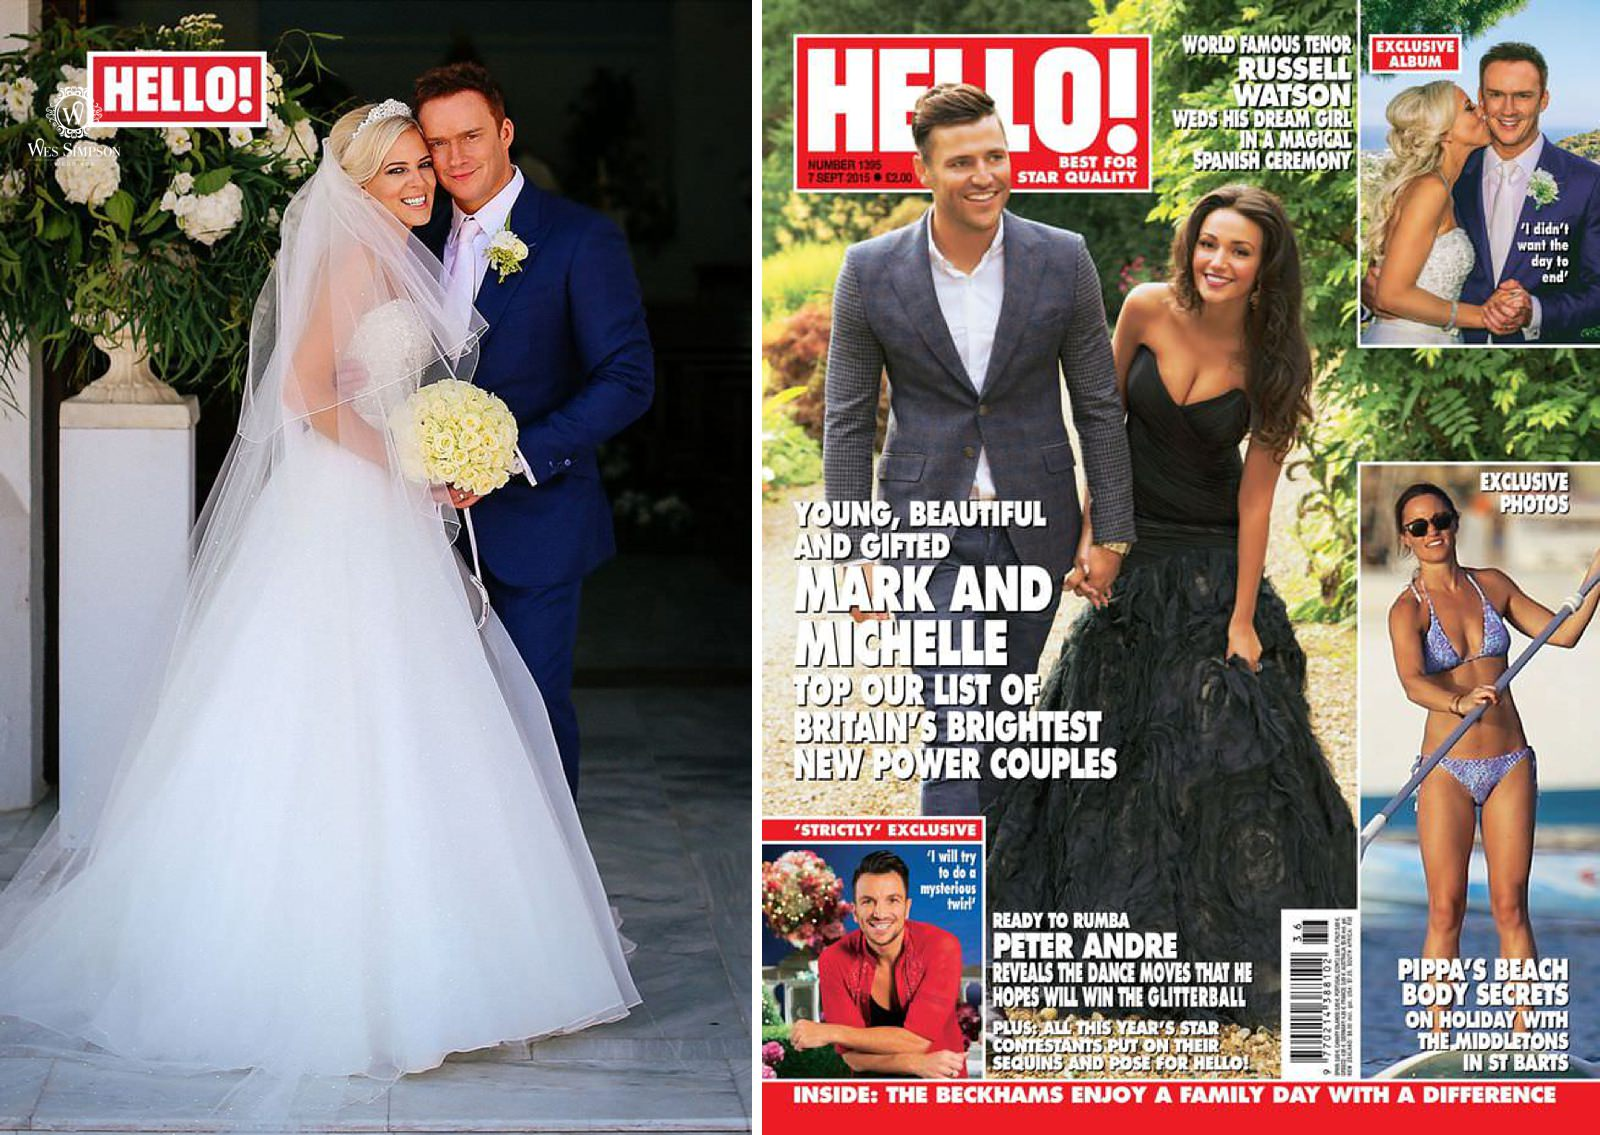 Liverpool Celebrity wedding photographer, Liverpool Echo feature from Hello! Magazine